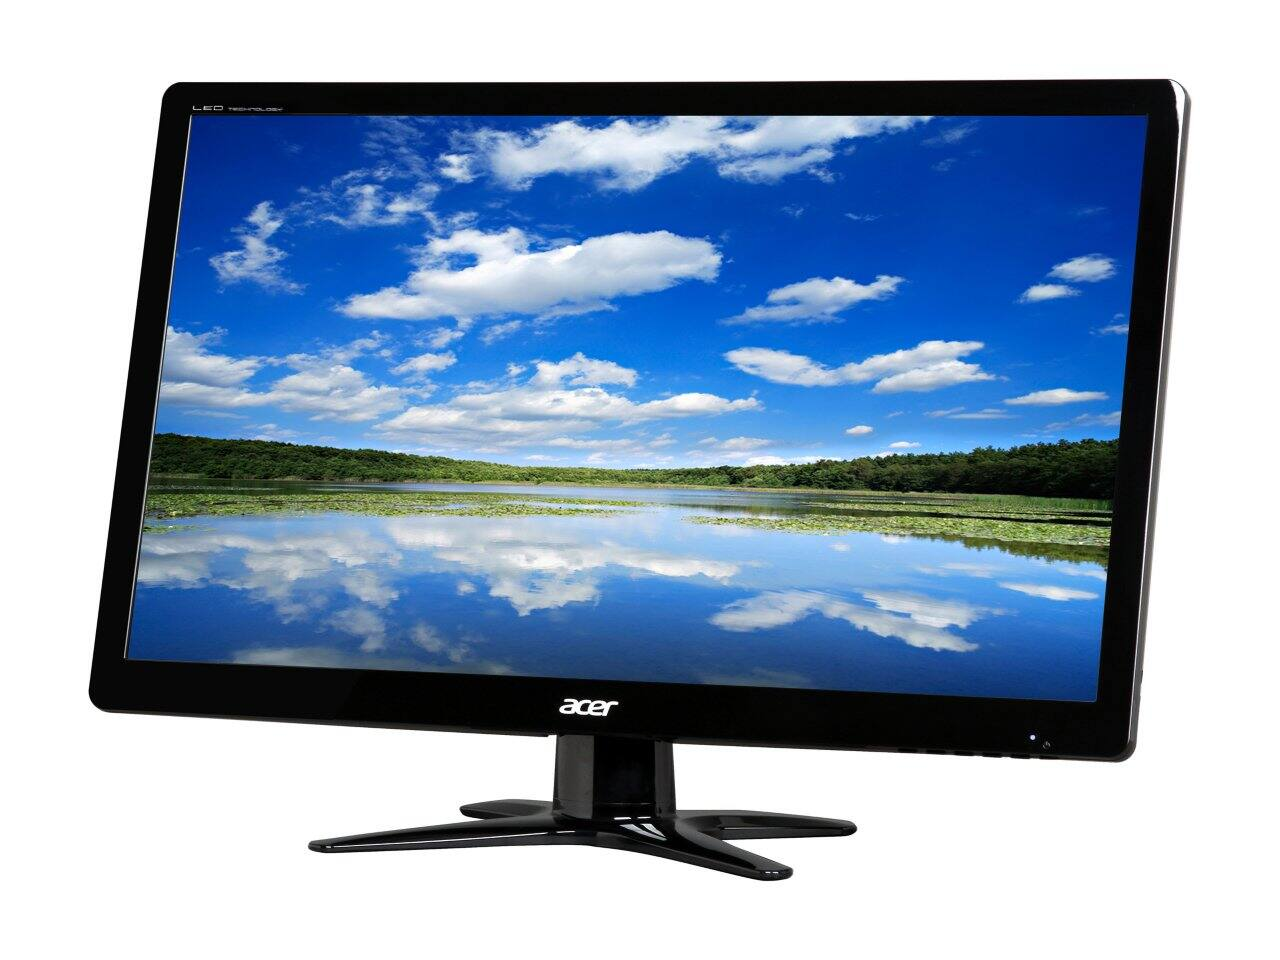 """23"""" Acer G6 Series 1920x1080 5ms TN Panel LED Monitor for $89.99 AC, 24"""" Acer G6 Series 1920x1080 5ms TN Panel LED Monitor for $99.99 AC + S&H & More @ Newegg.com"""